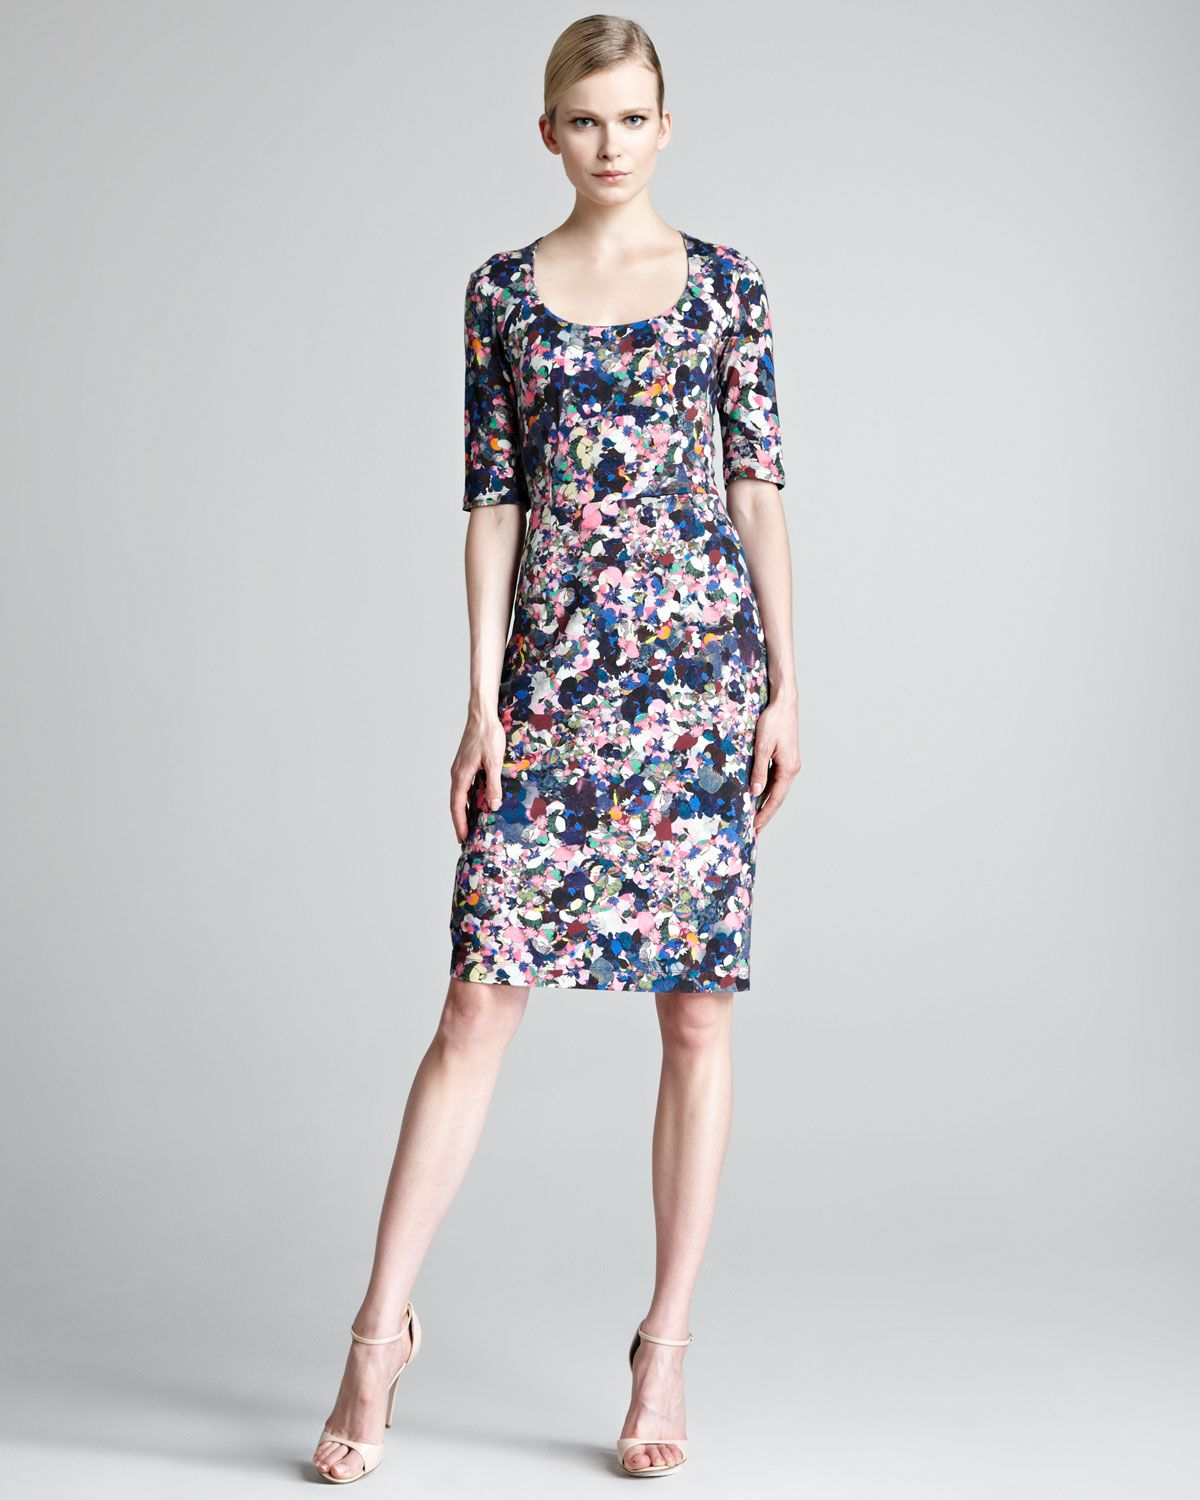 Etta floral print dress neiman marcus i want to wear etta floral print dress neiman marcus ombrellifo Image collections